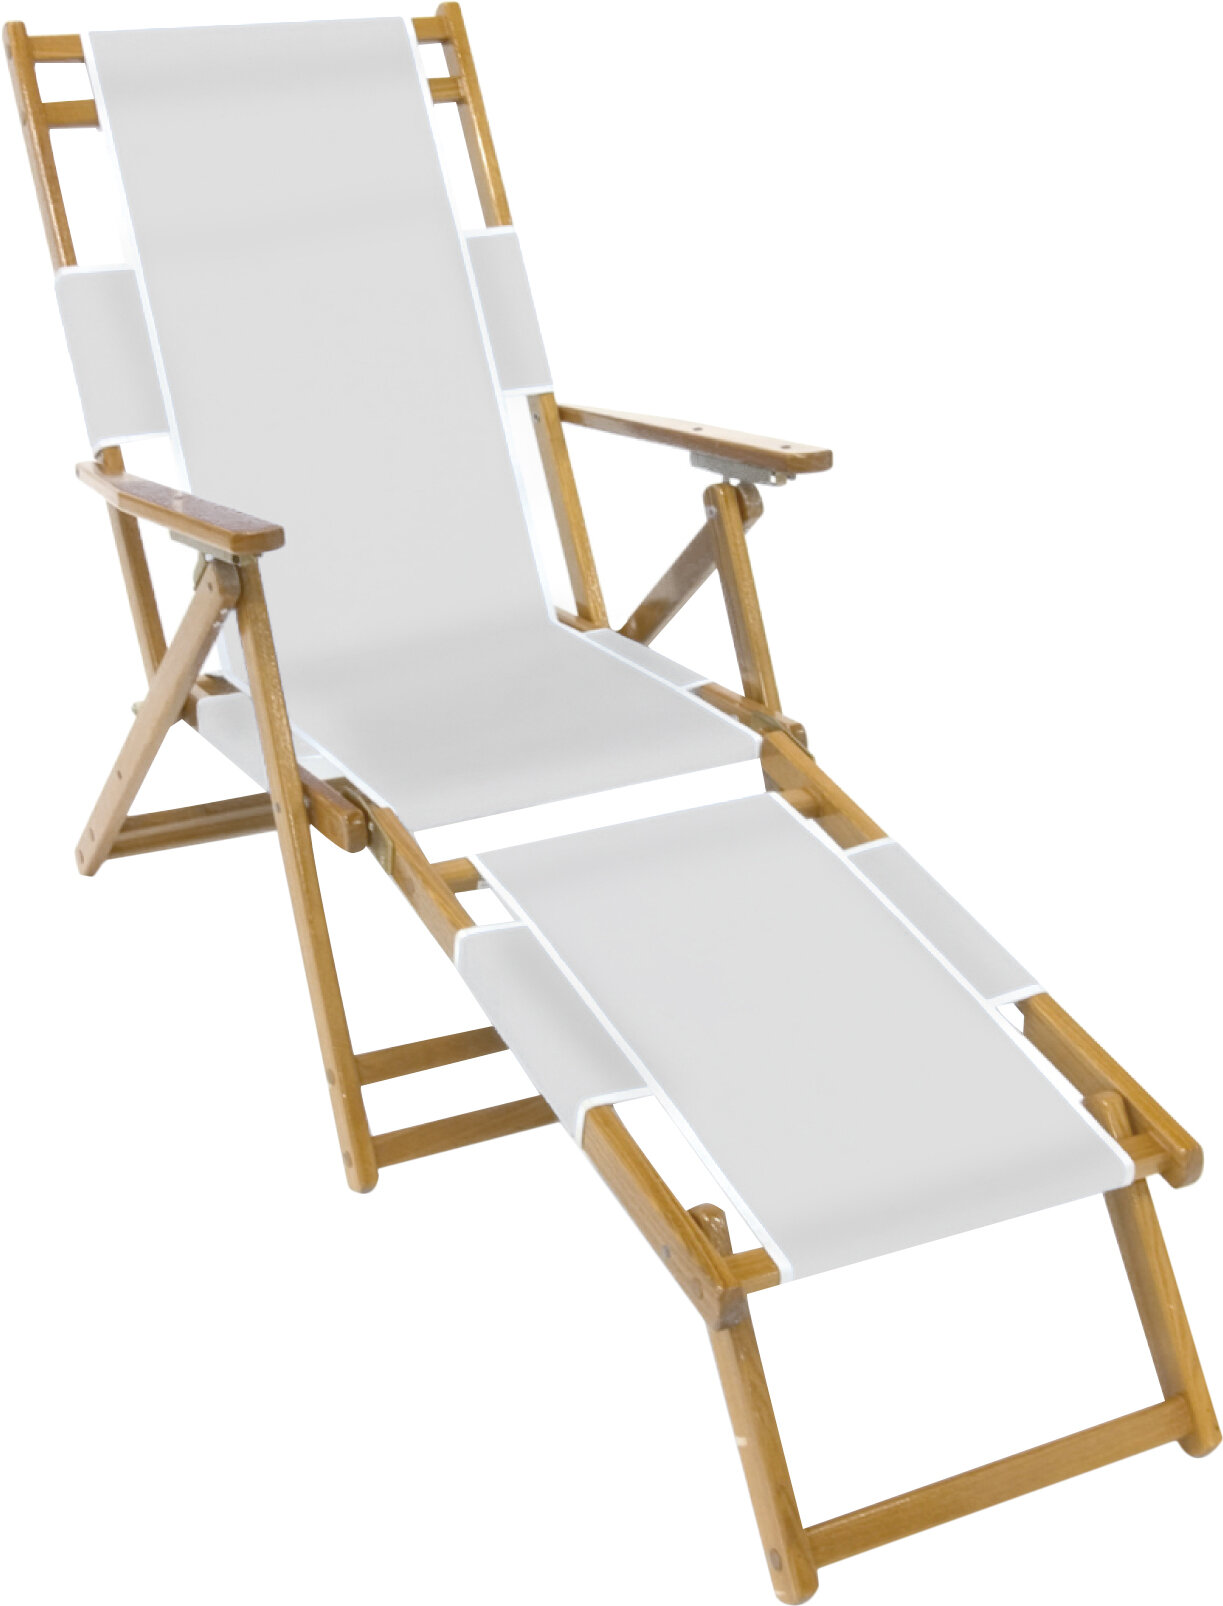 blue navy chairs commercial captain chair furniture contract resort nba the beach umbrellas brand